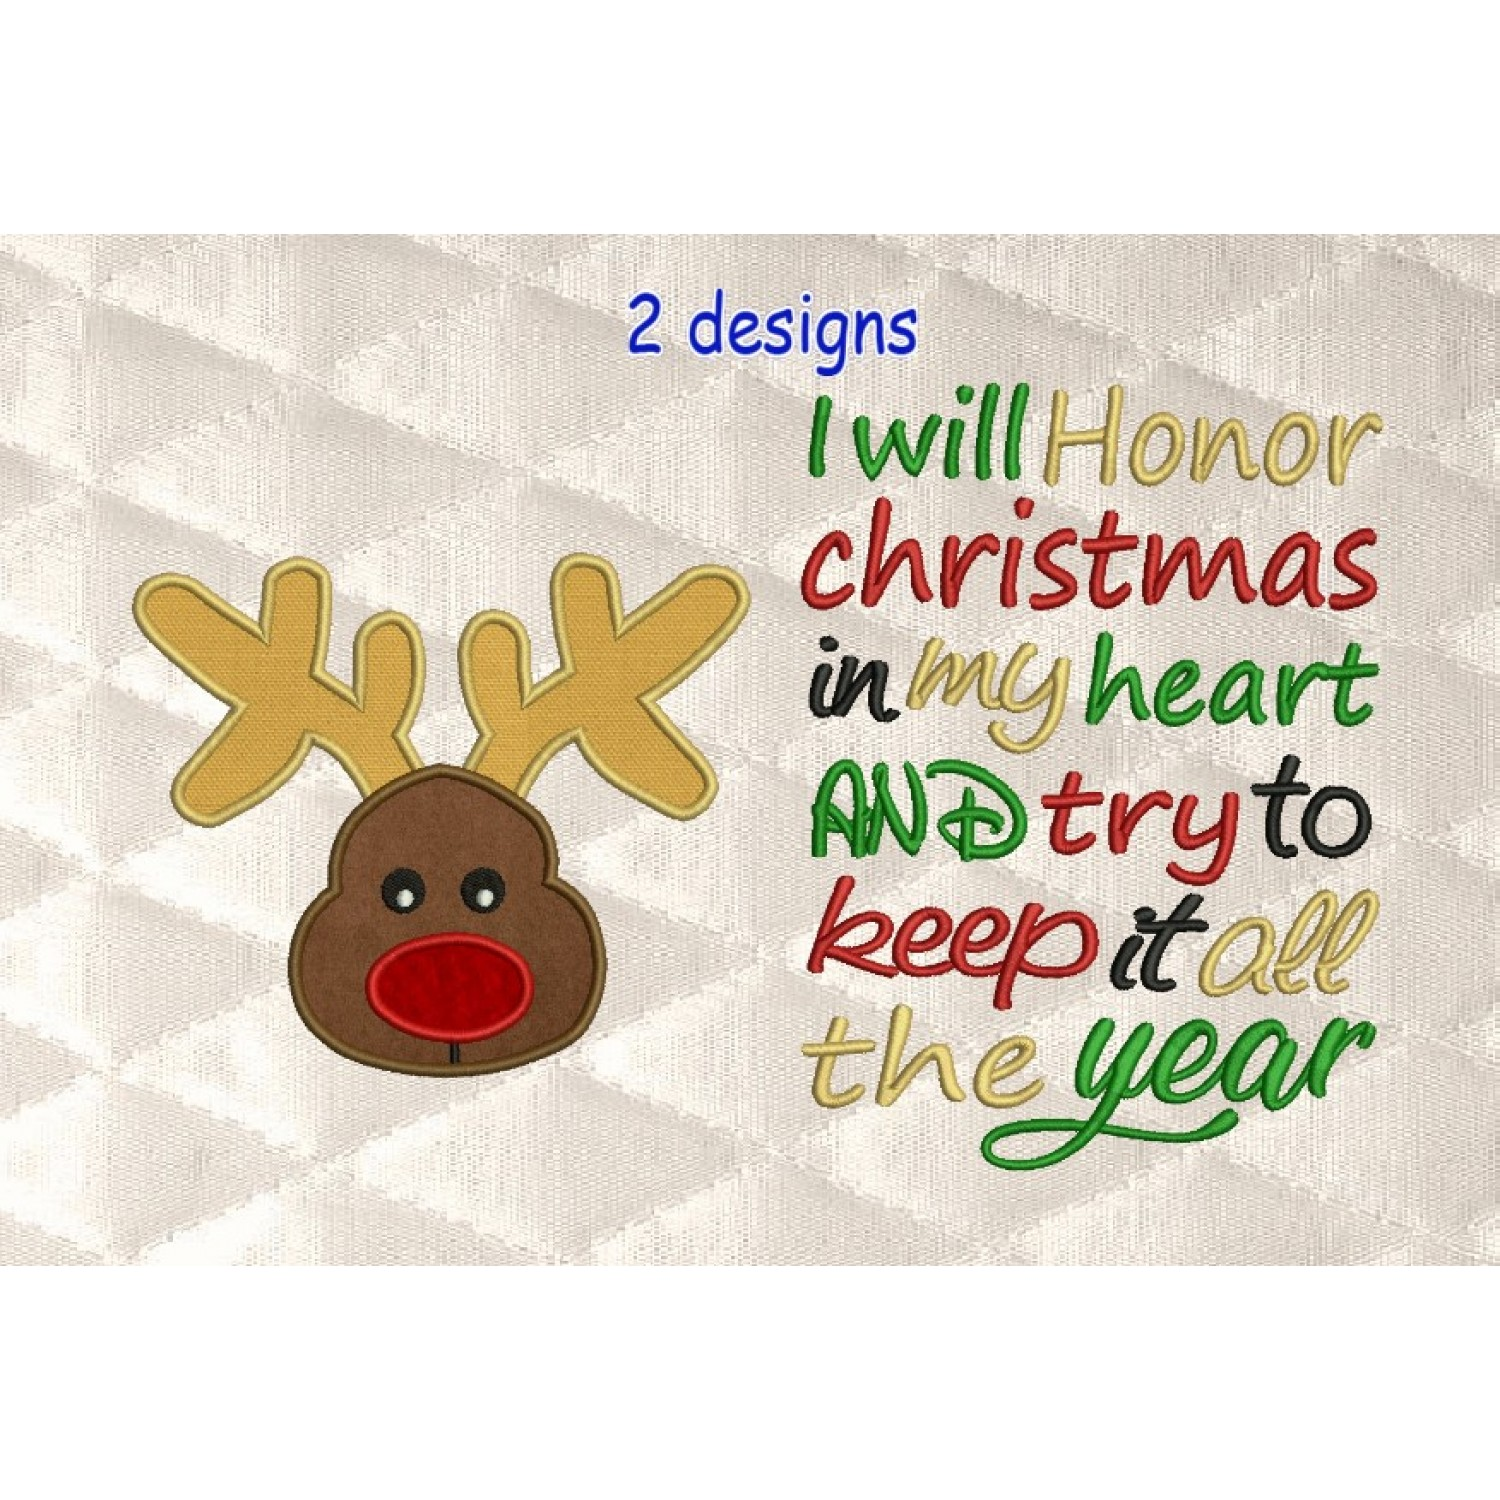 Reindeer Face applique with i will honor Christmas 2 designs 3 sizes